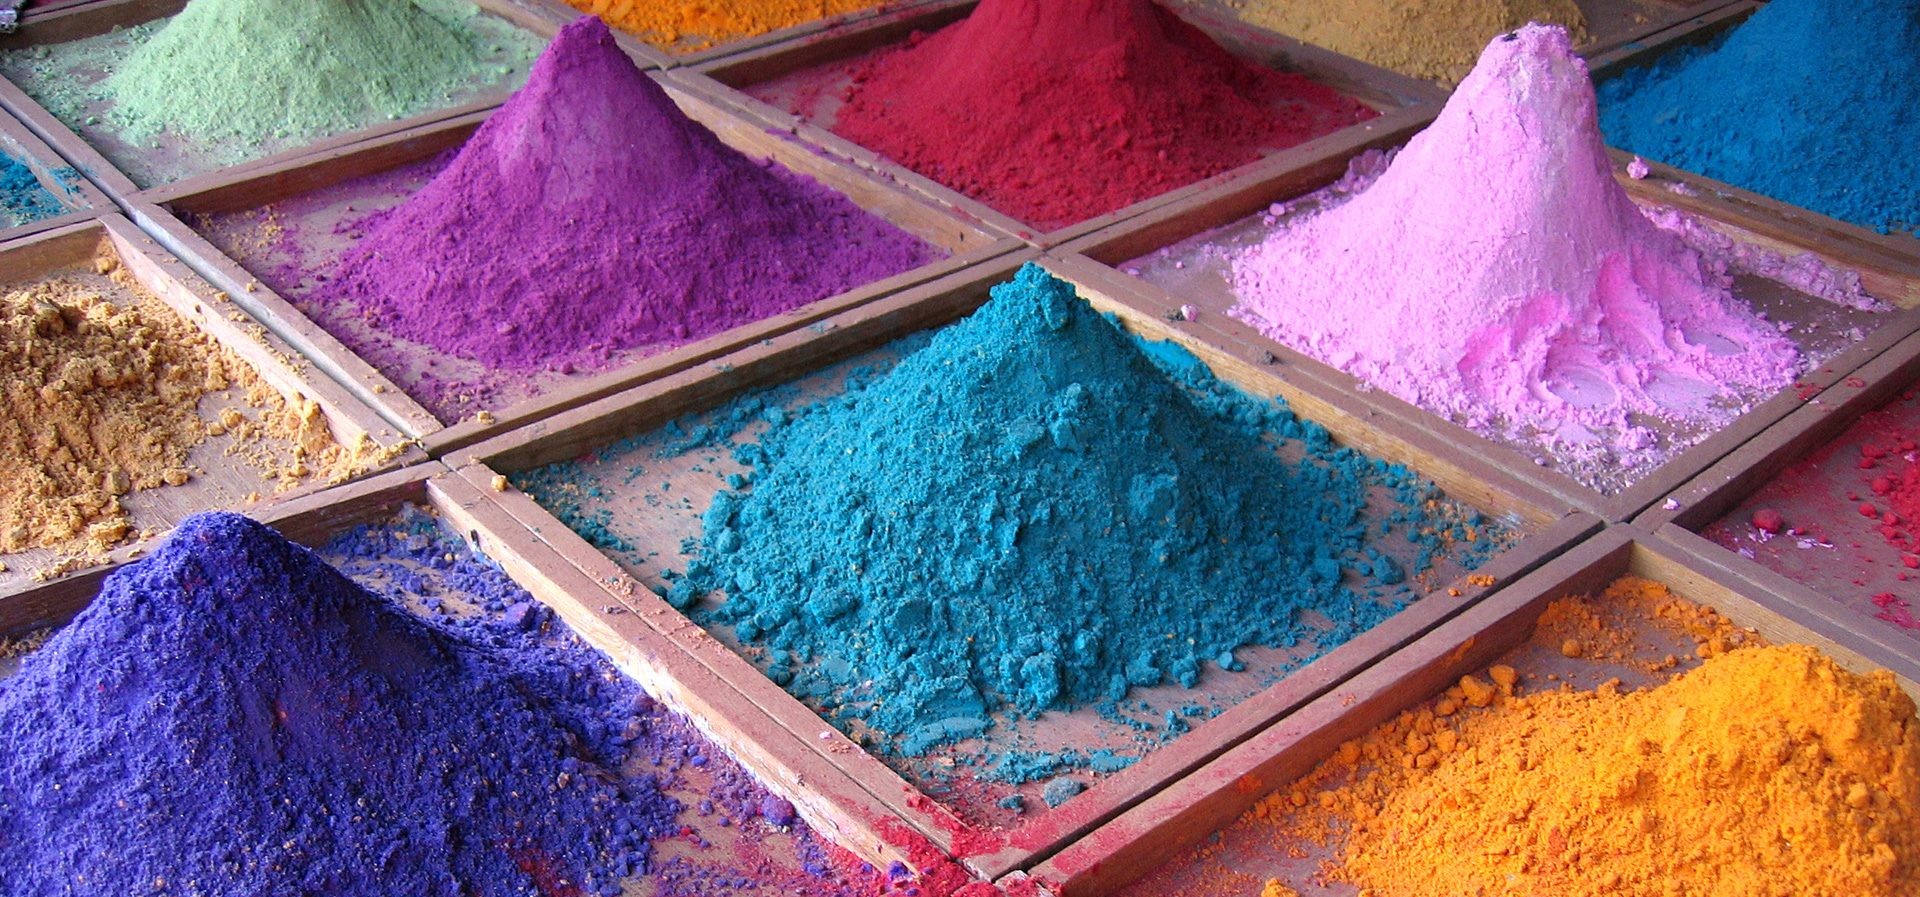 Colorful piles of pigment powder in a grid